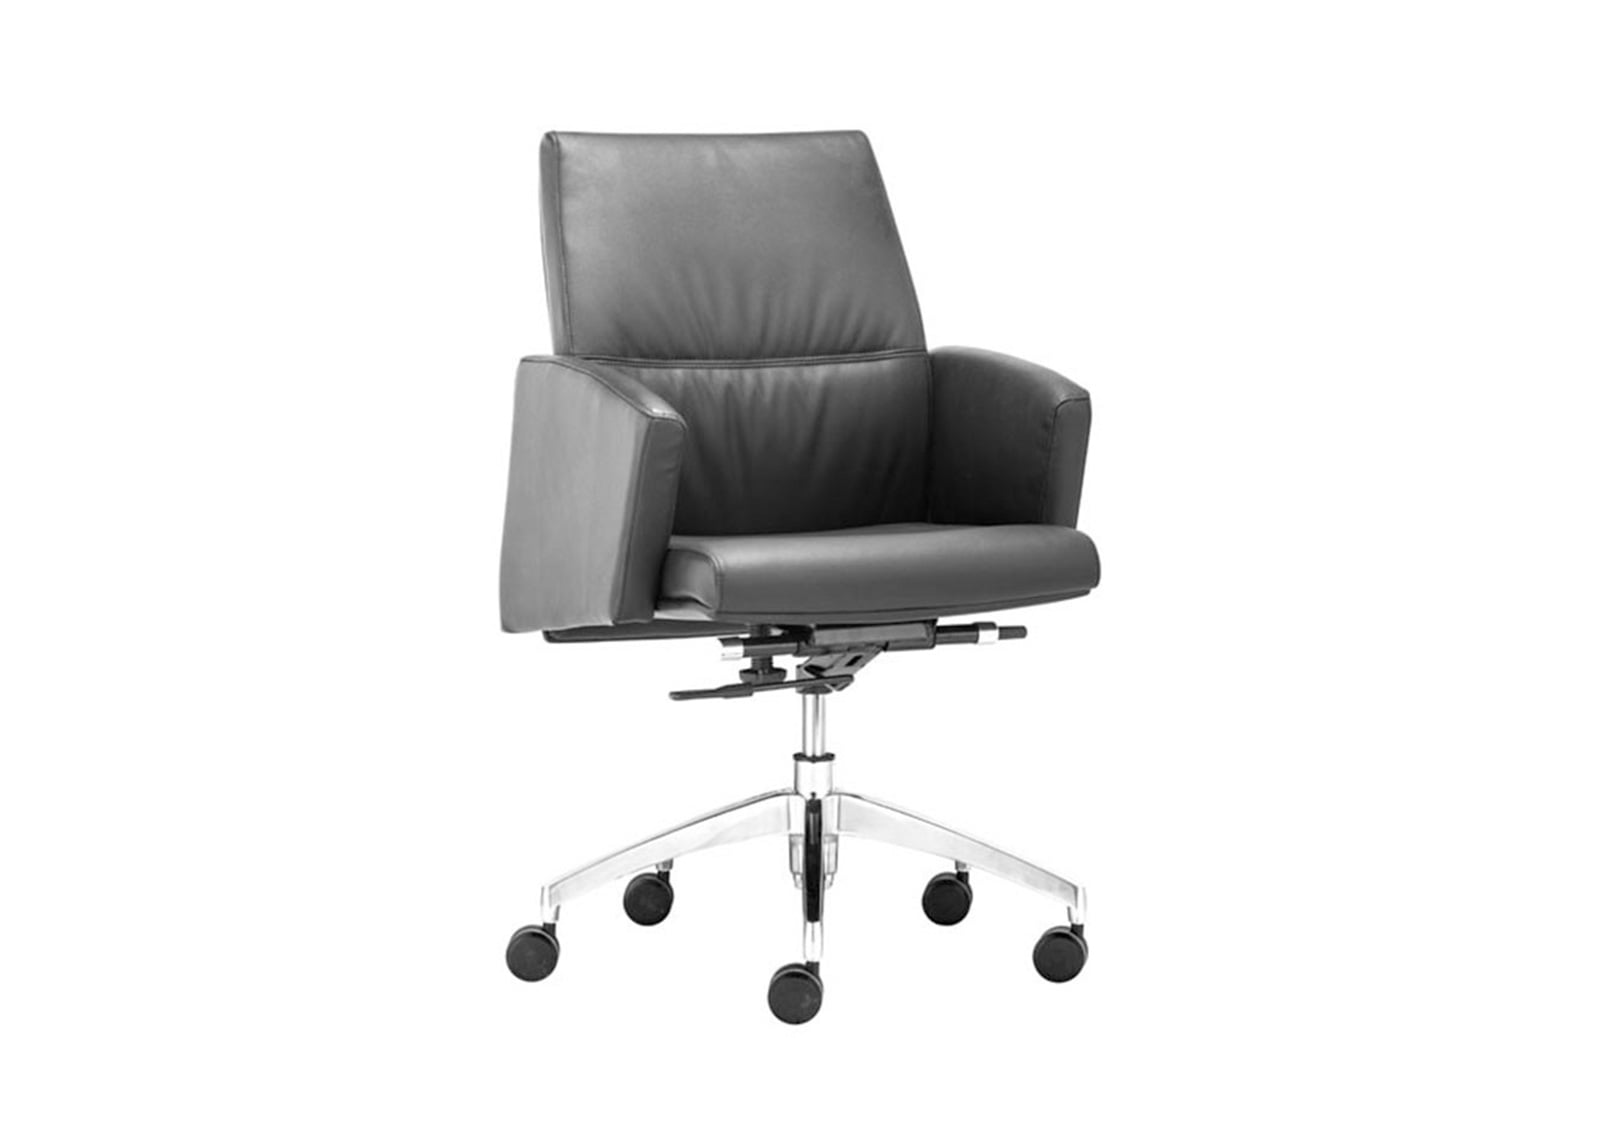 low back chair baby trend high replacement cover chieftain office black furnishplus